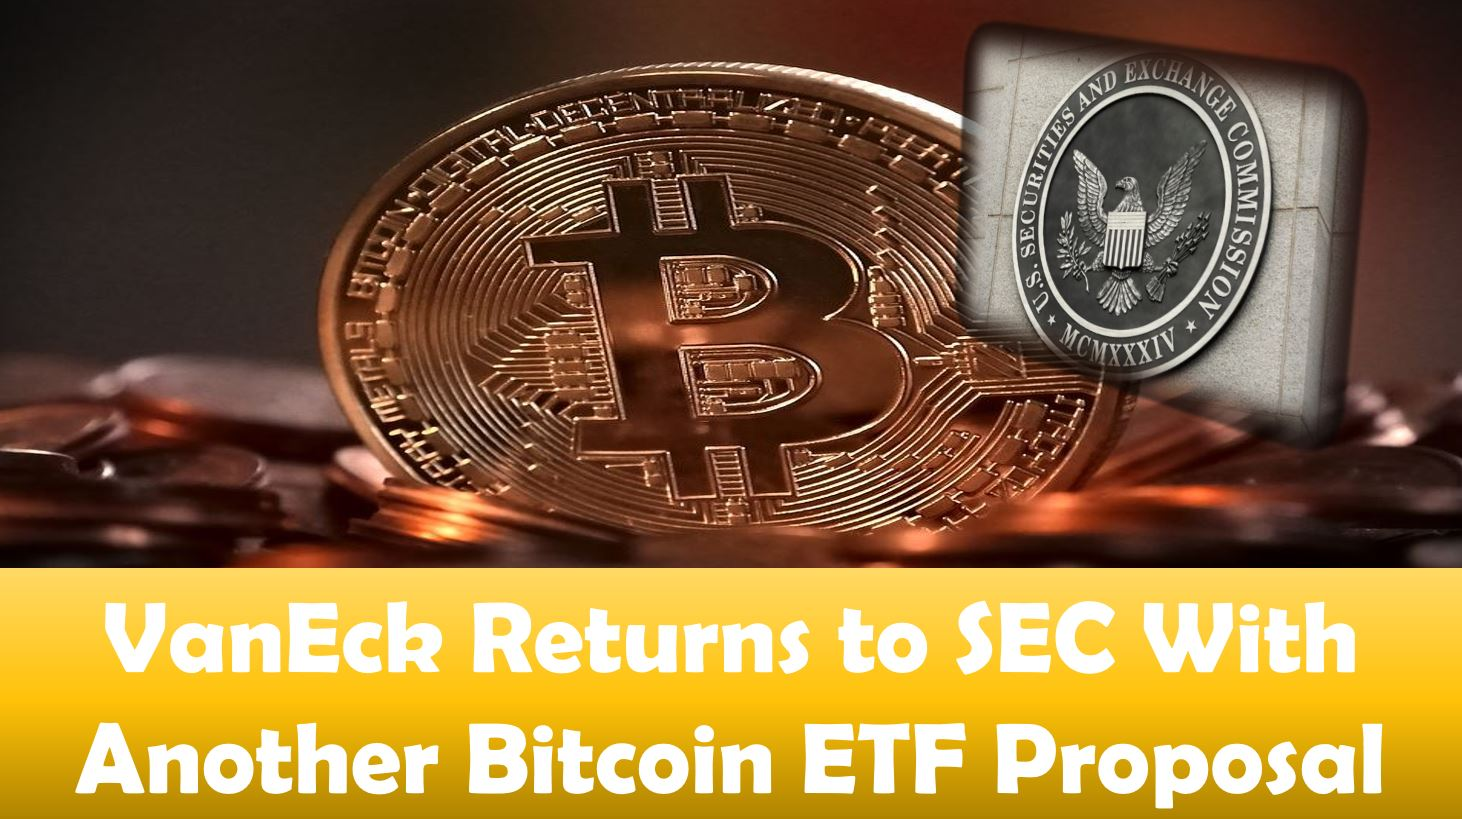 VanEck Returns to SEC With Another Bitcoin ETF Proposal